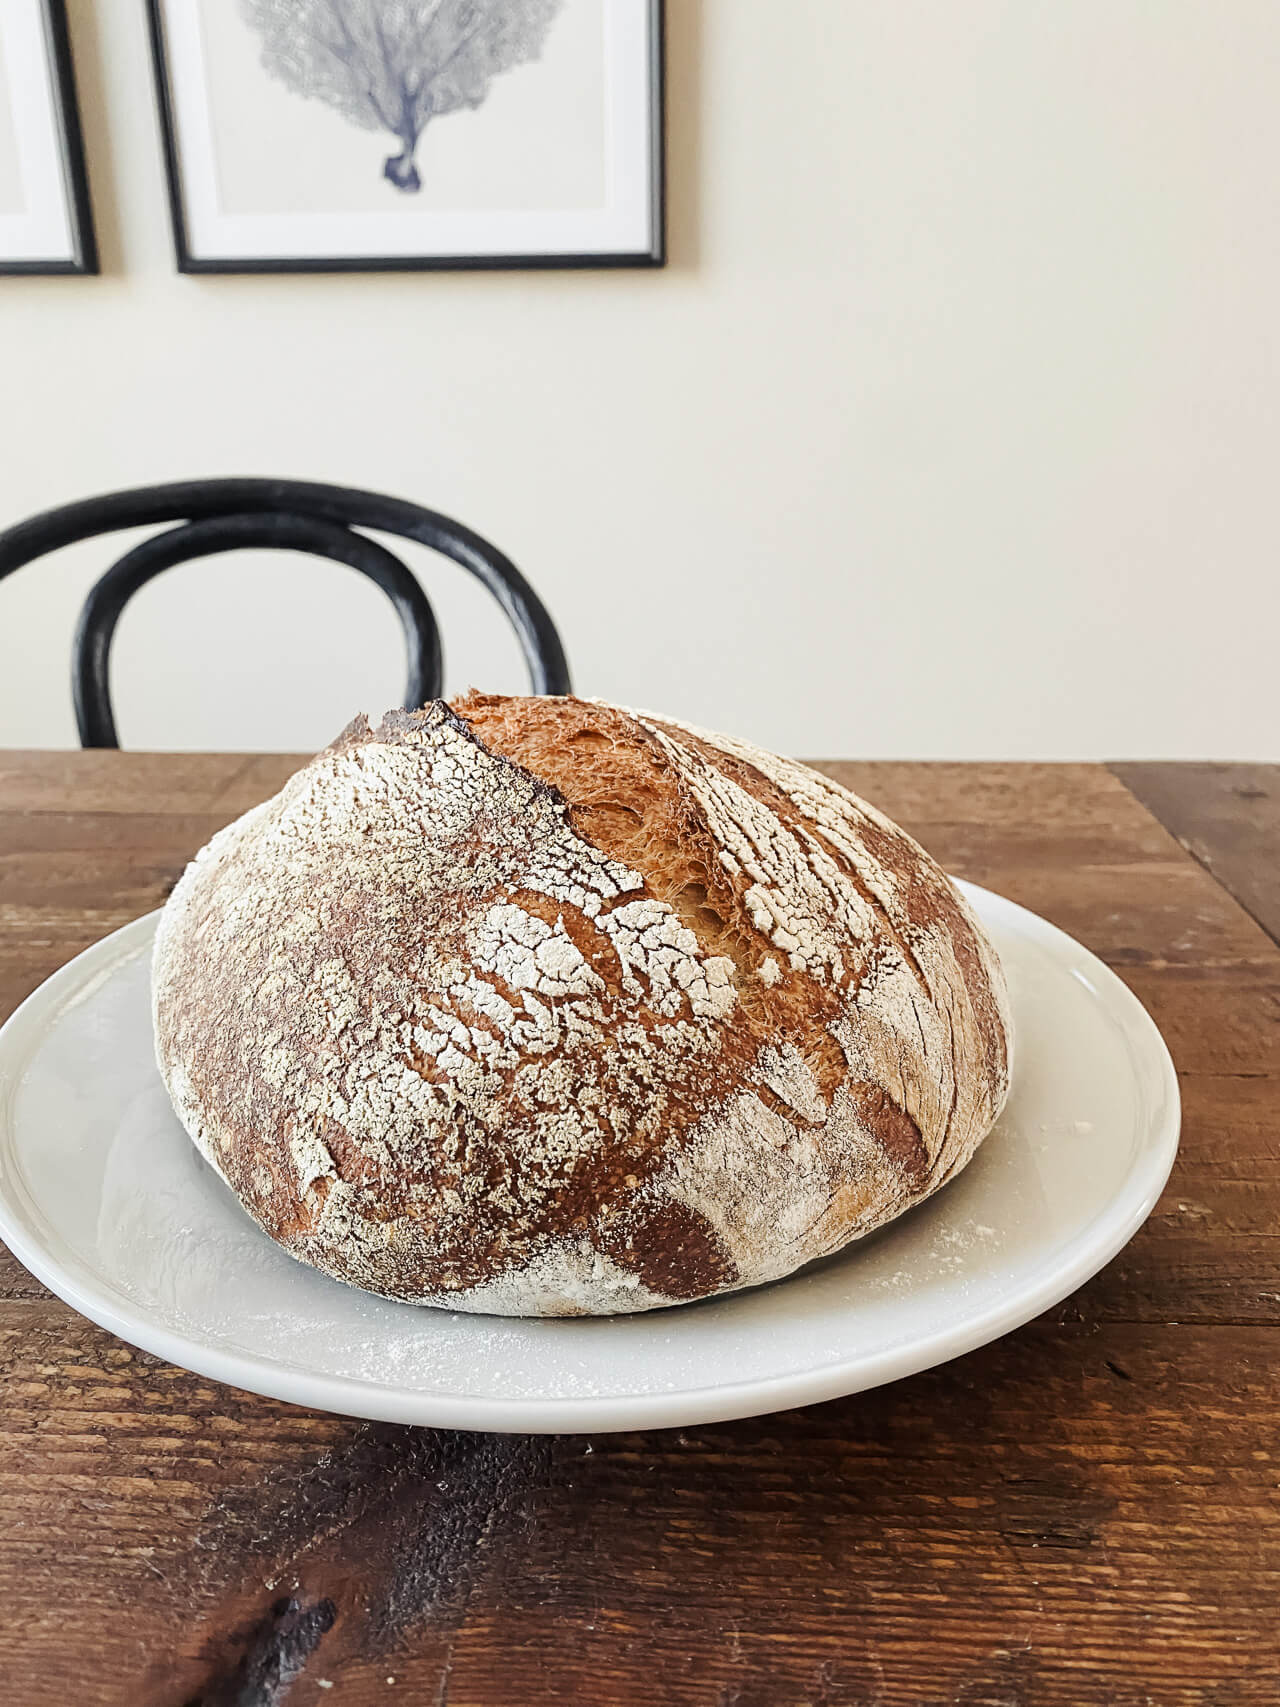 This spring we've been making sourdough bread starter, baking and cooking up a storm, adjusting to working from home with kids, and enjoying lots of family time! Plus shopping the online sales of course! - M Loves M @marmar